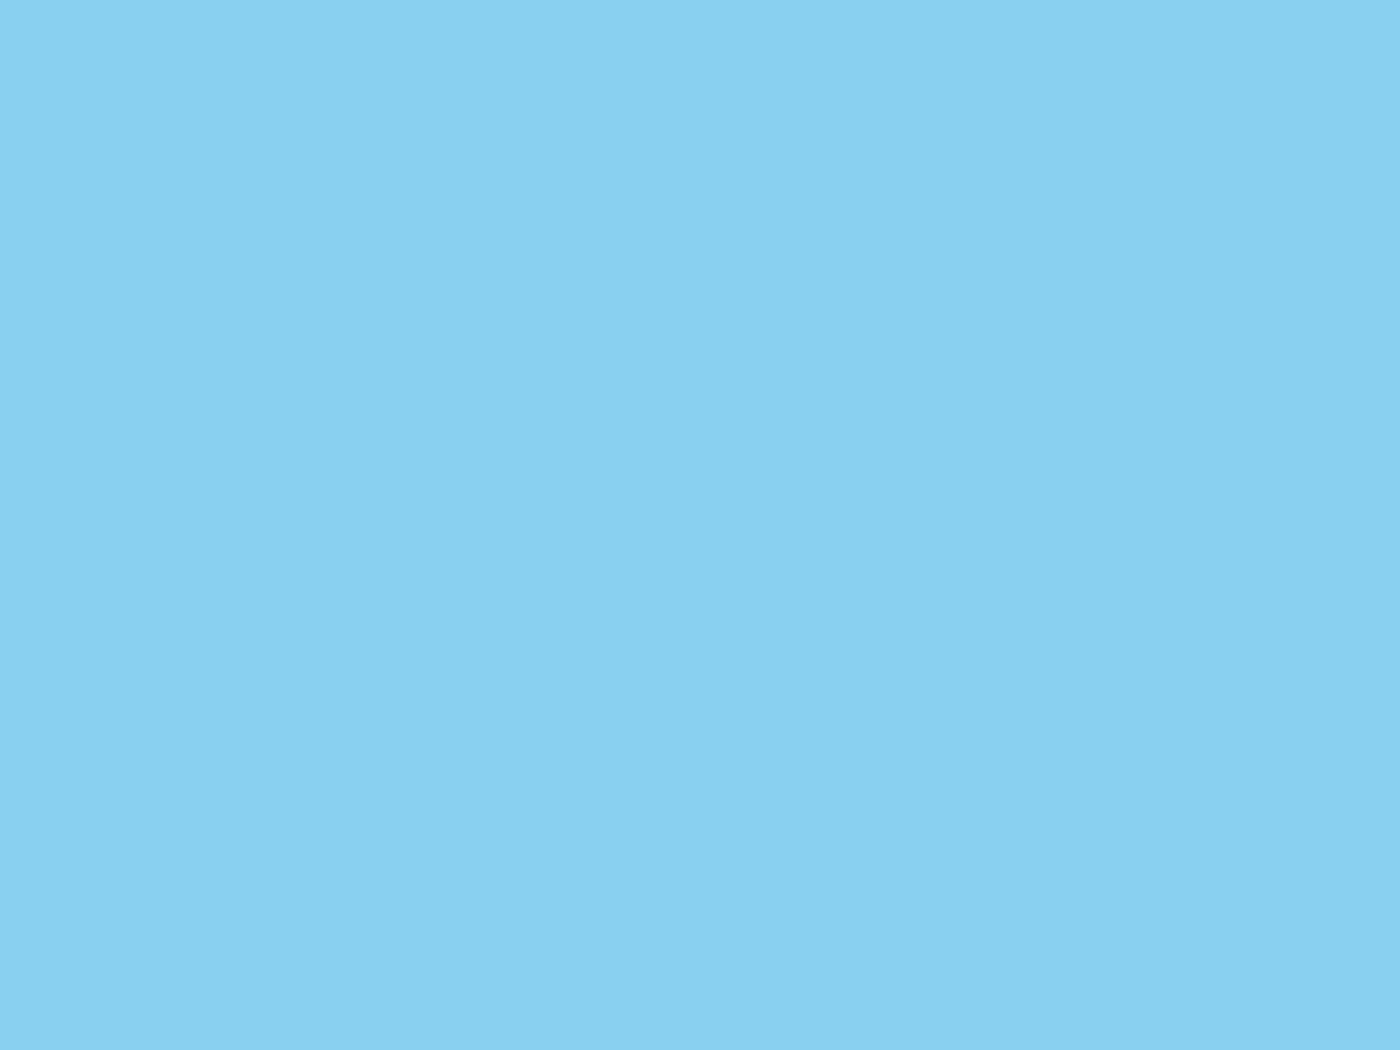 1400x1050 Baby Blue Solid Color Background